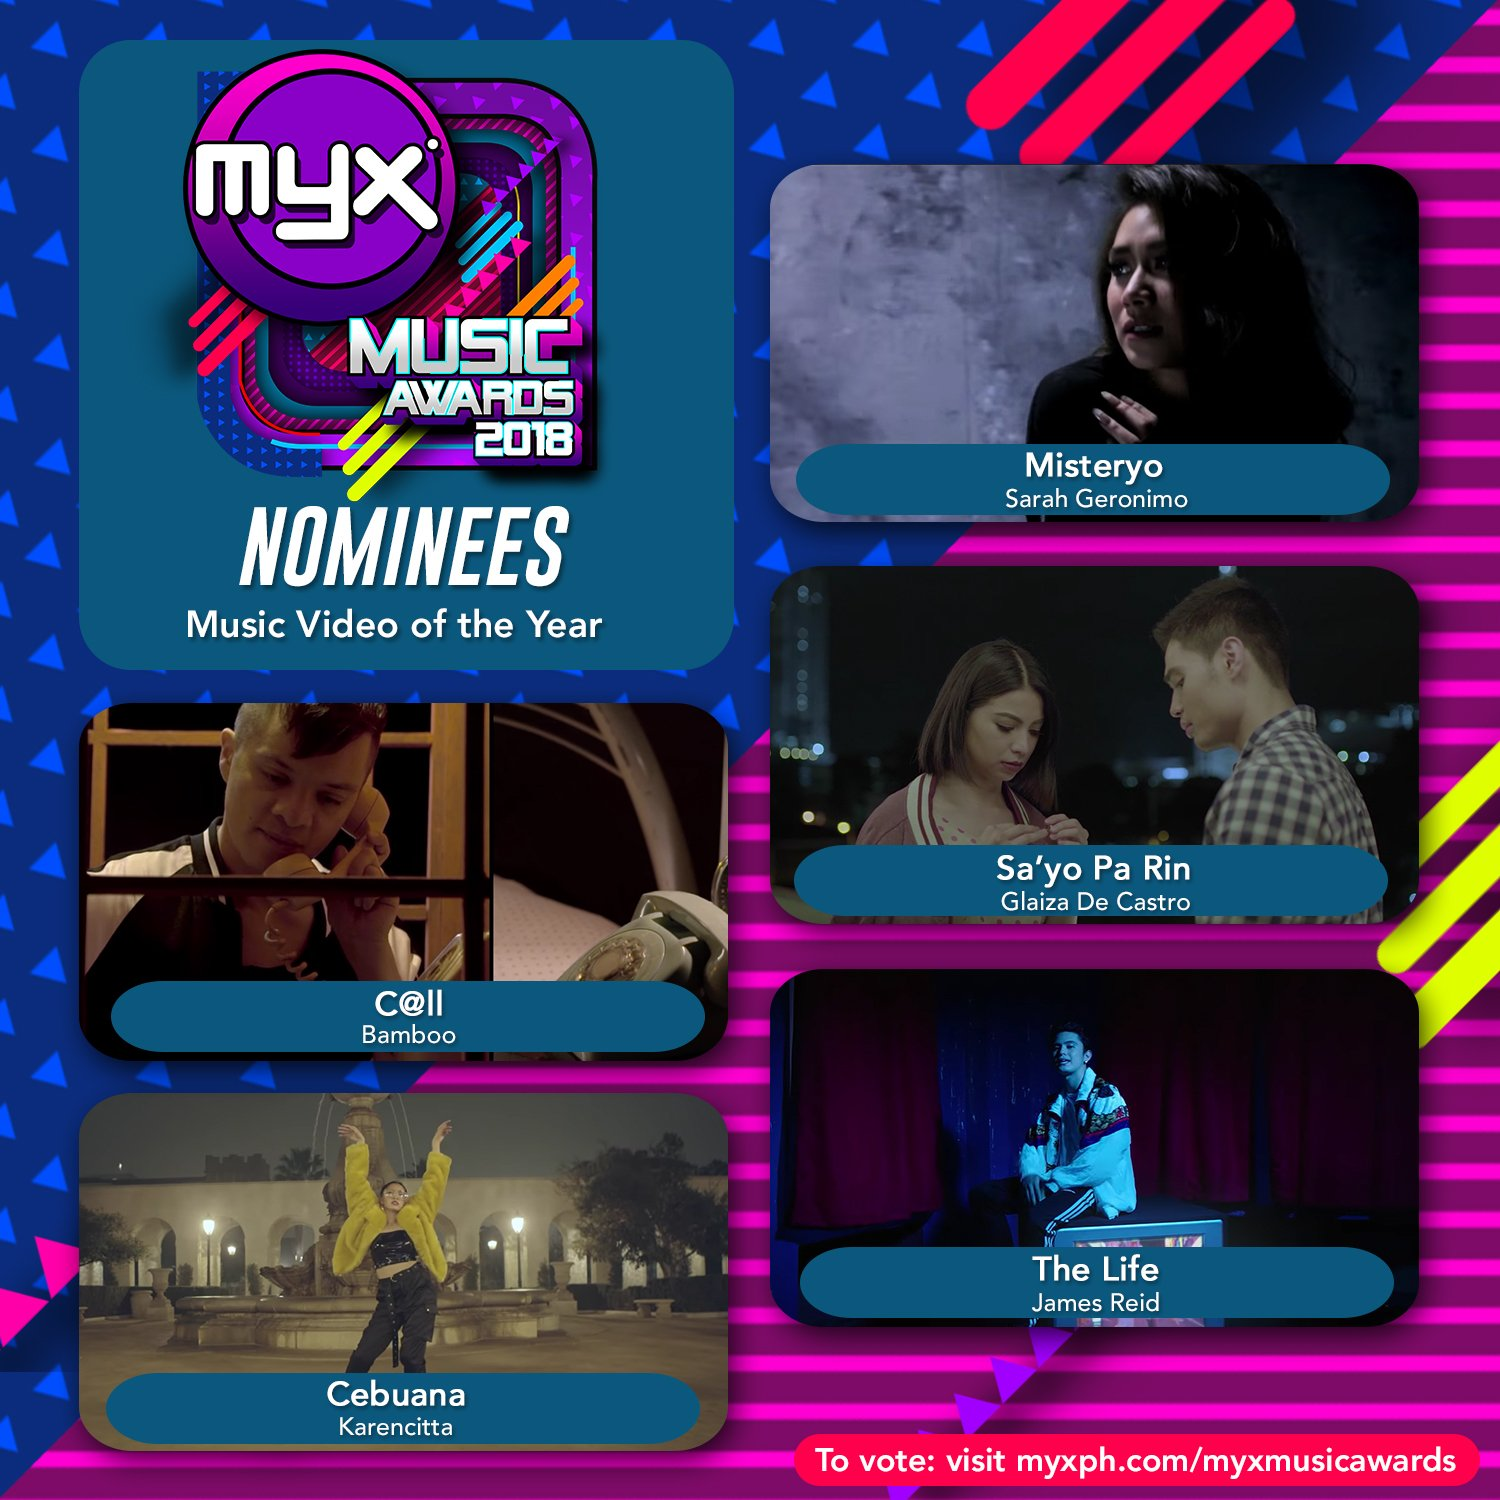 NOMINEES Music Video of the Year